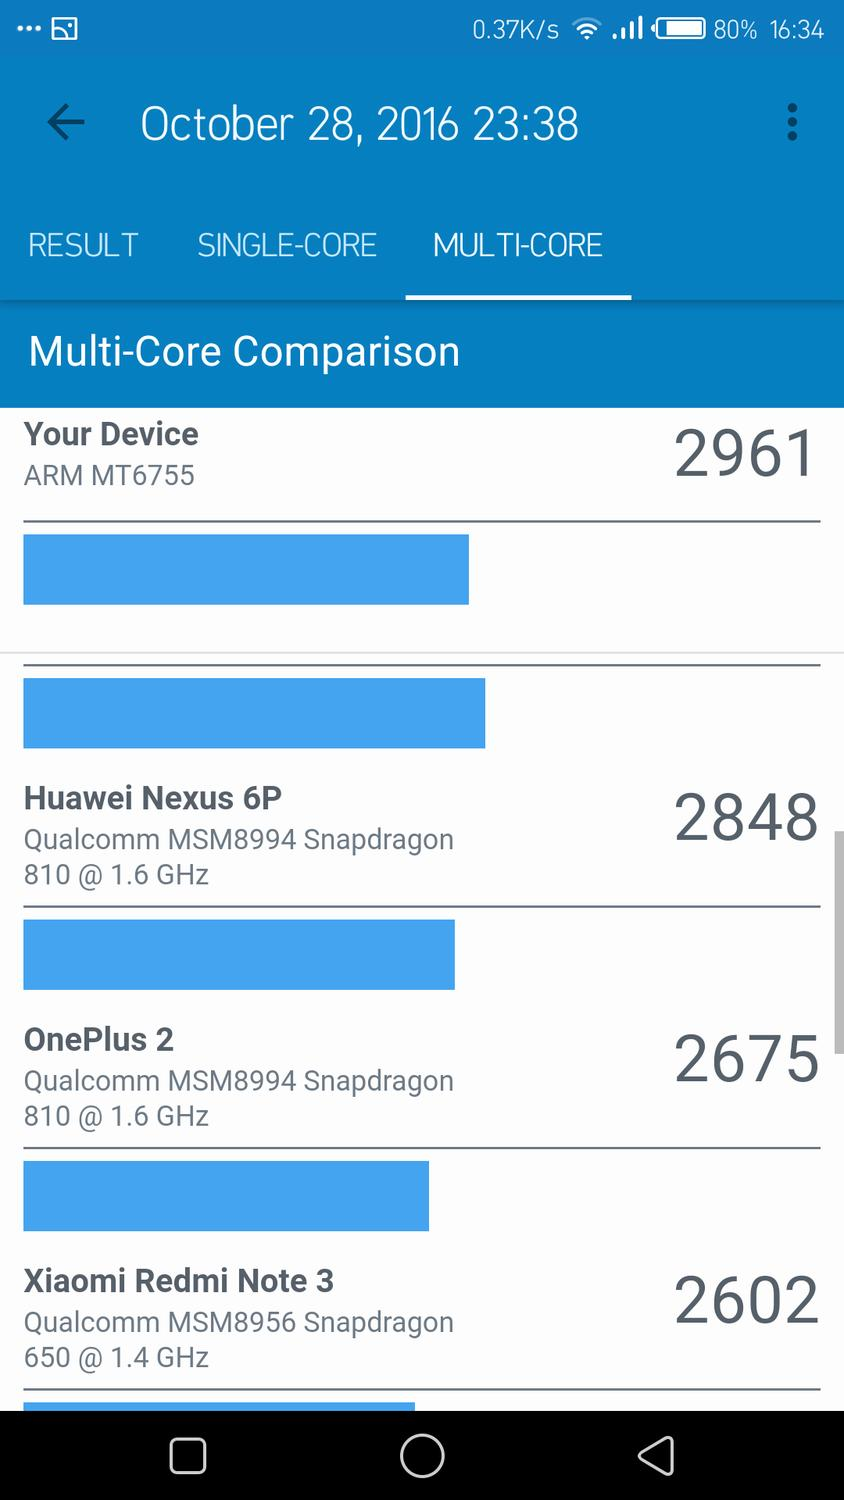 Tecno Phantom 6 benchmark result